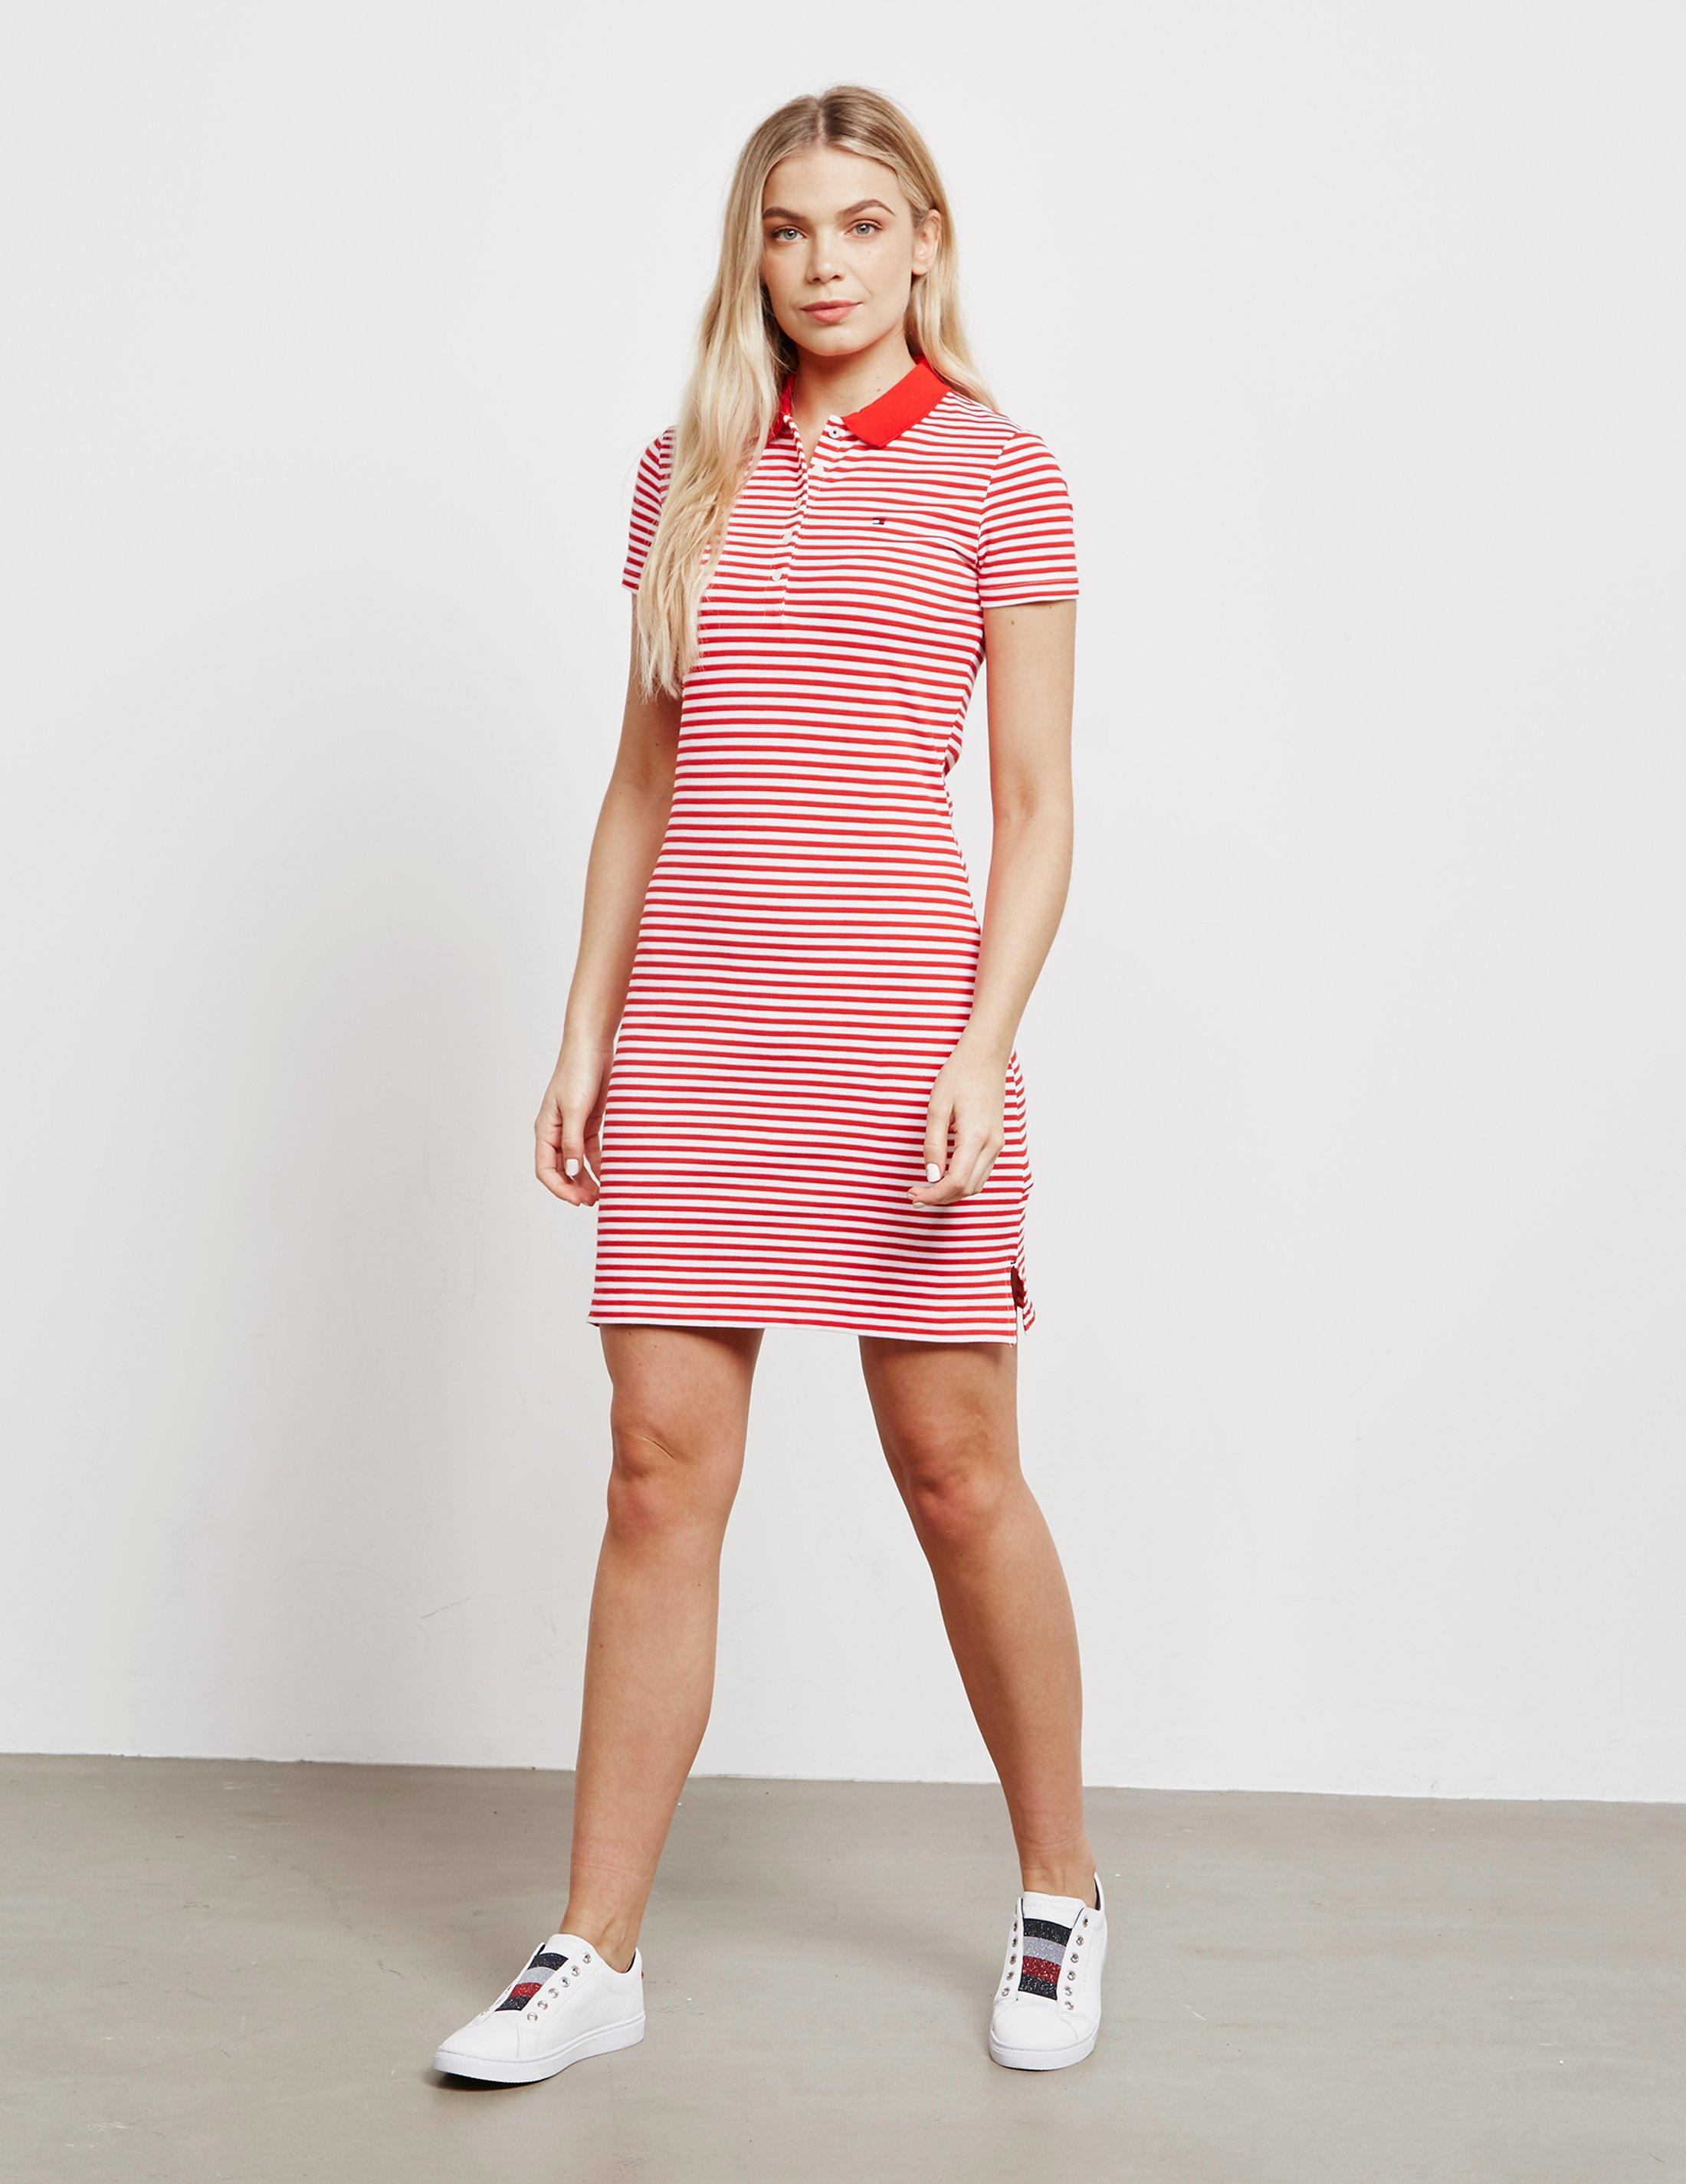 a5db0918c49 Lyst - Tommy Hilfiger Chiara Polo Shirt Dress Red in Red